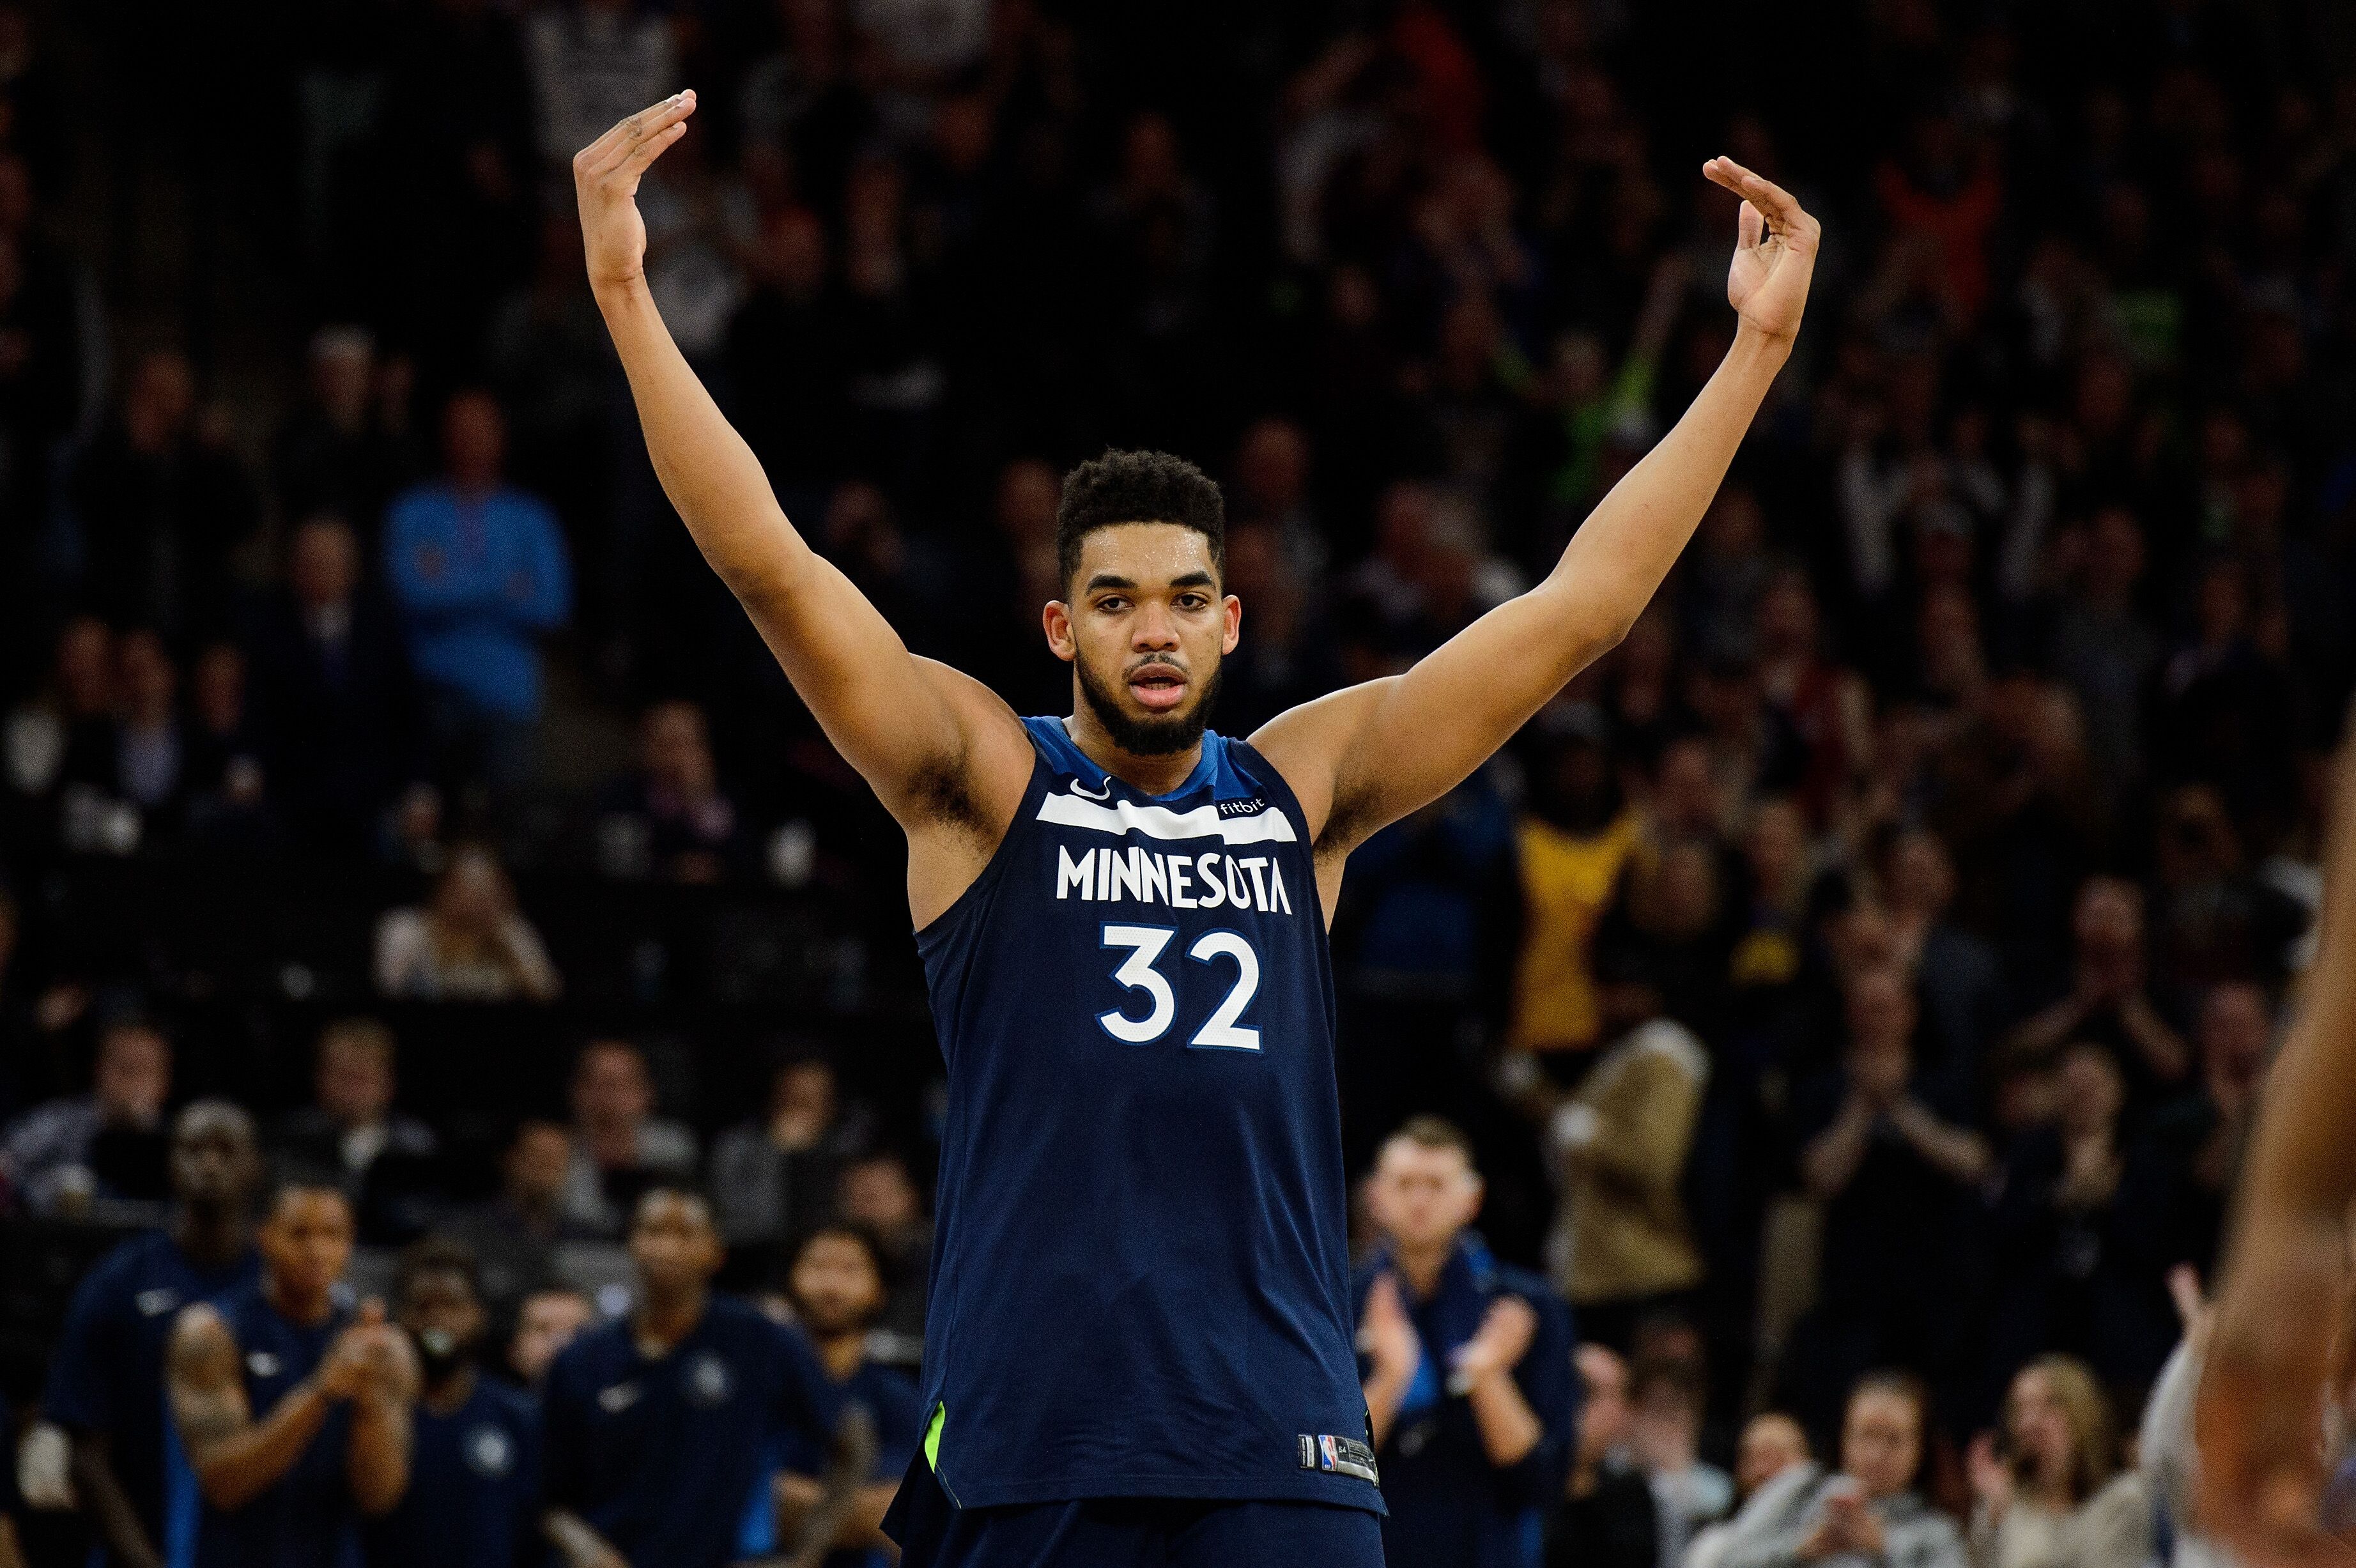 Karl-Anthony Towns is having a unique, historic season